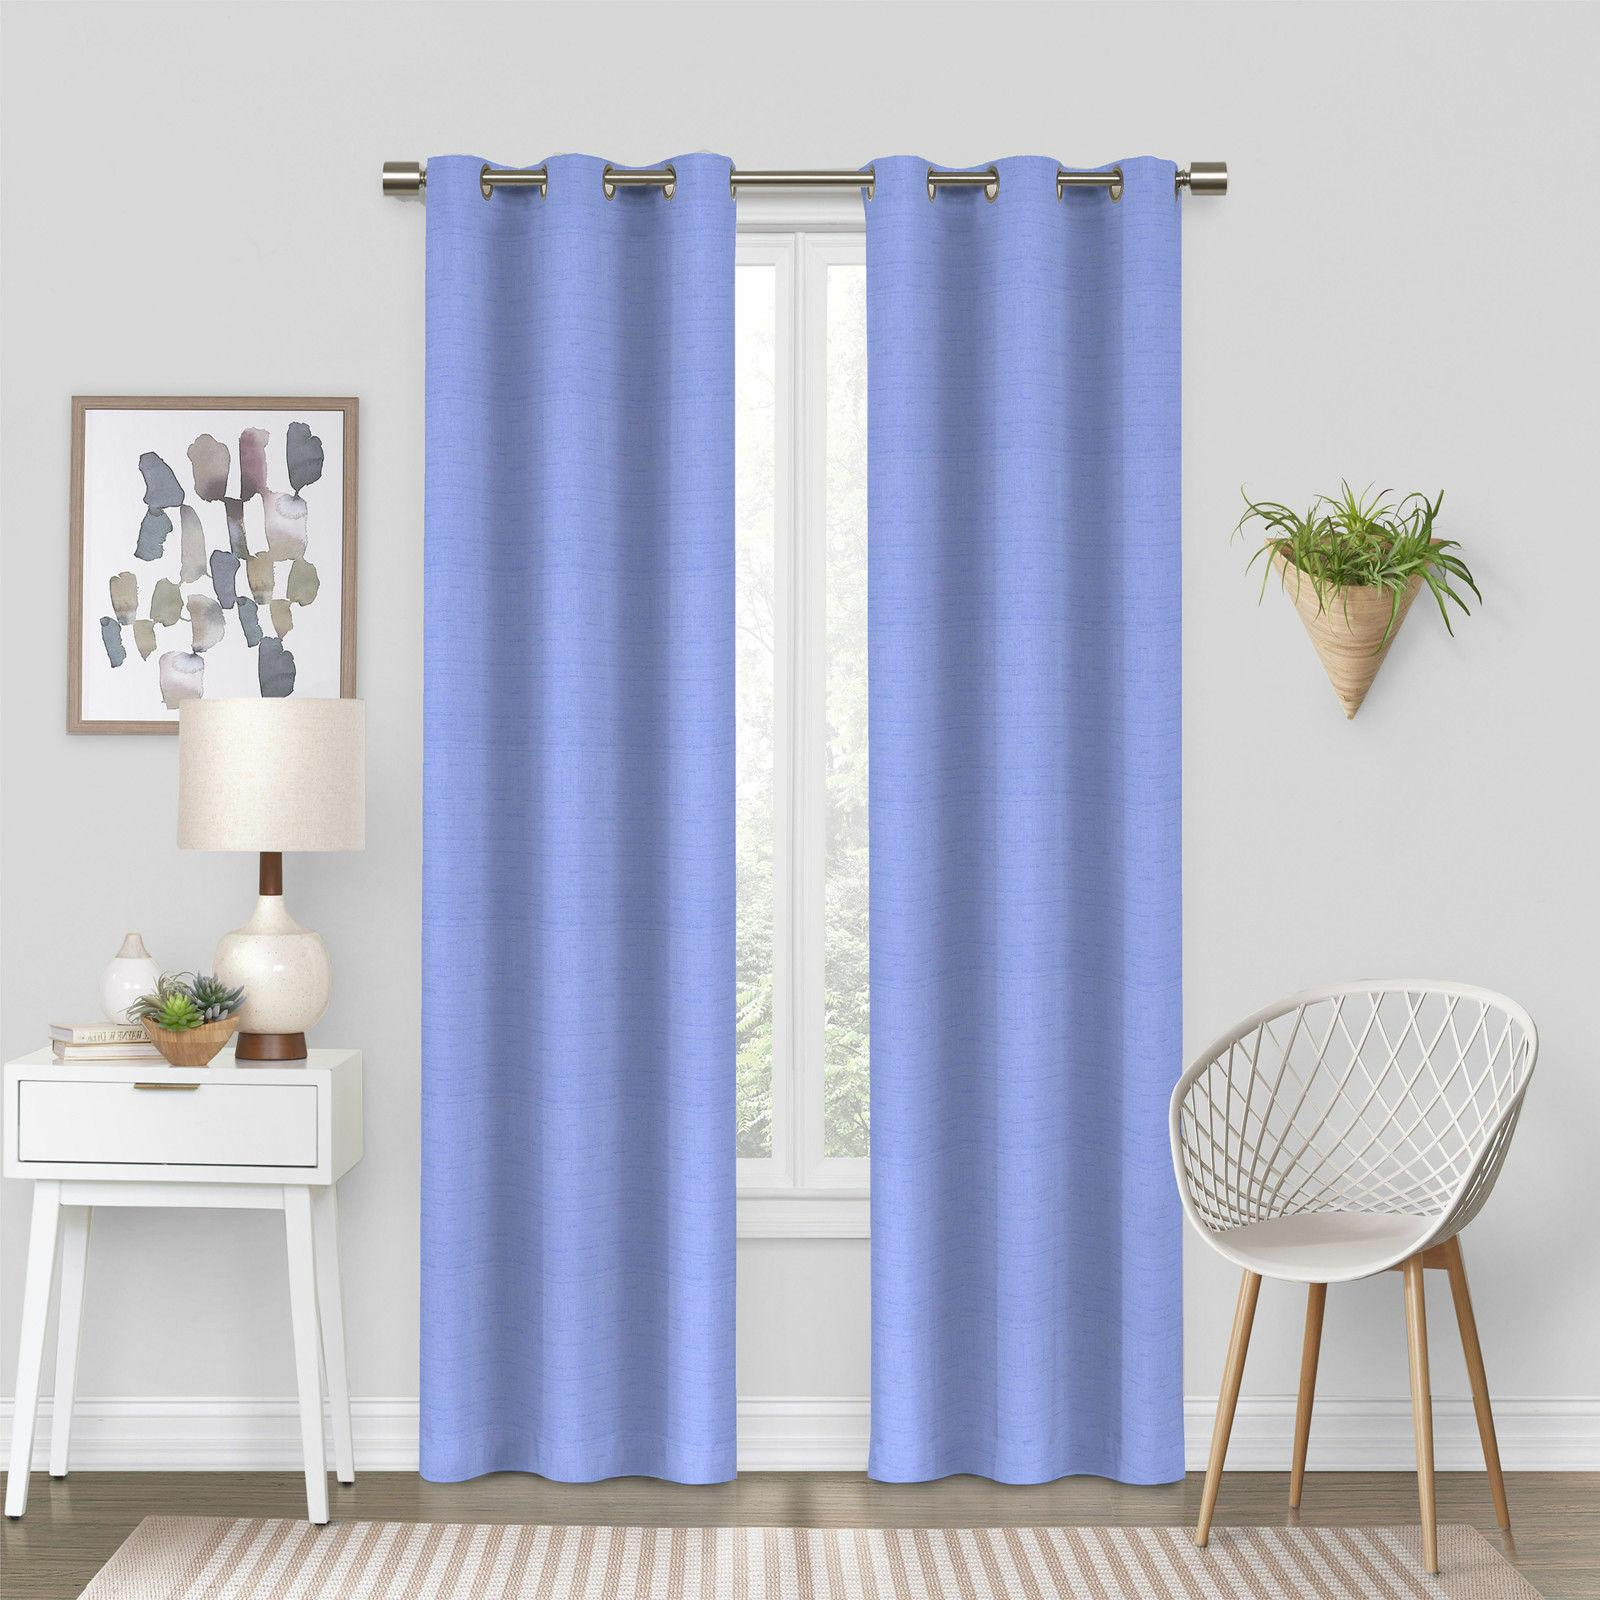 Blackout Energy Efficient Curtain Panel